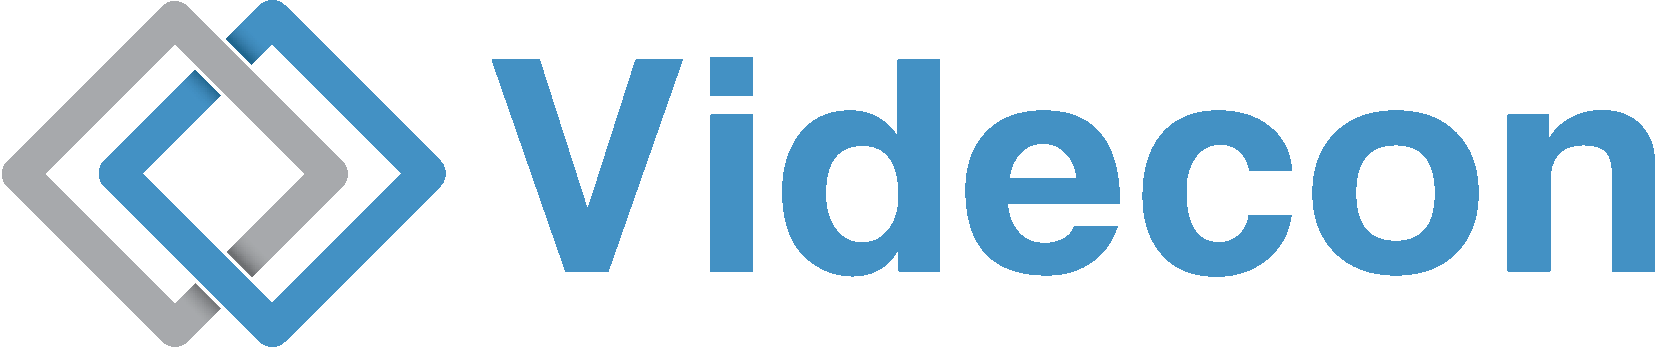 Videocon-logo-transparent